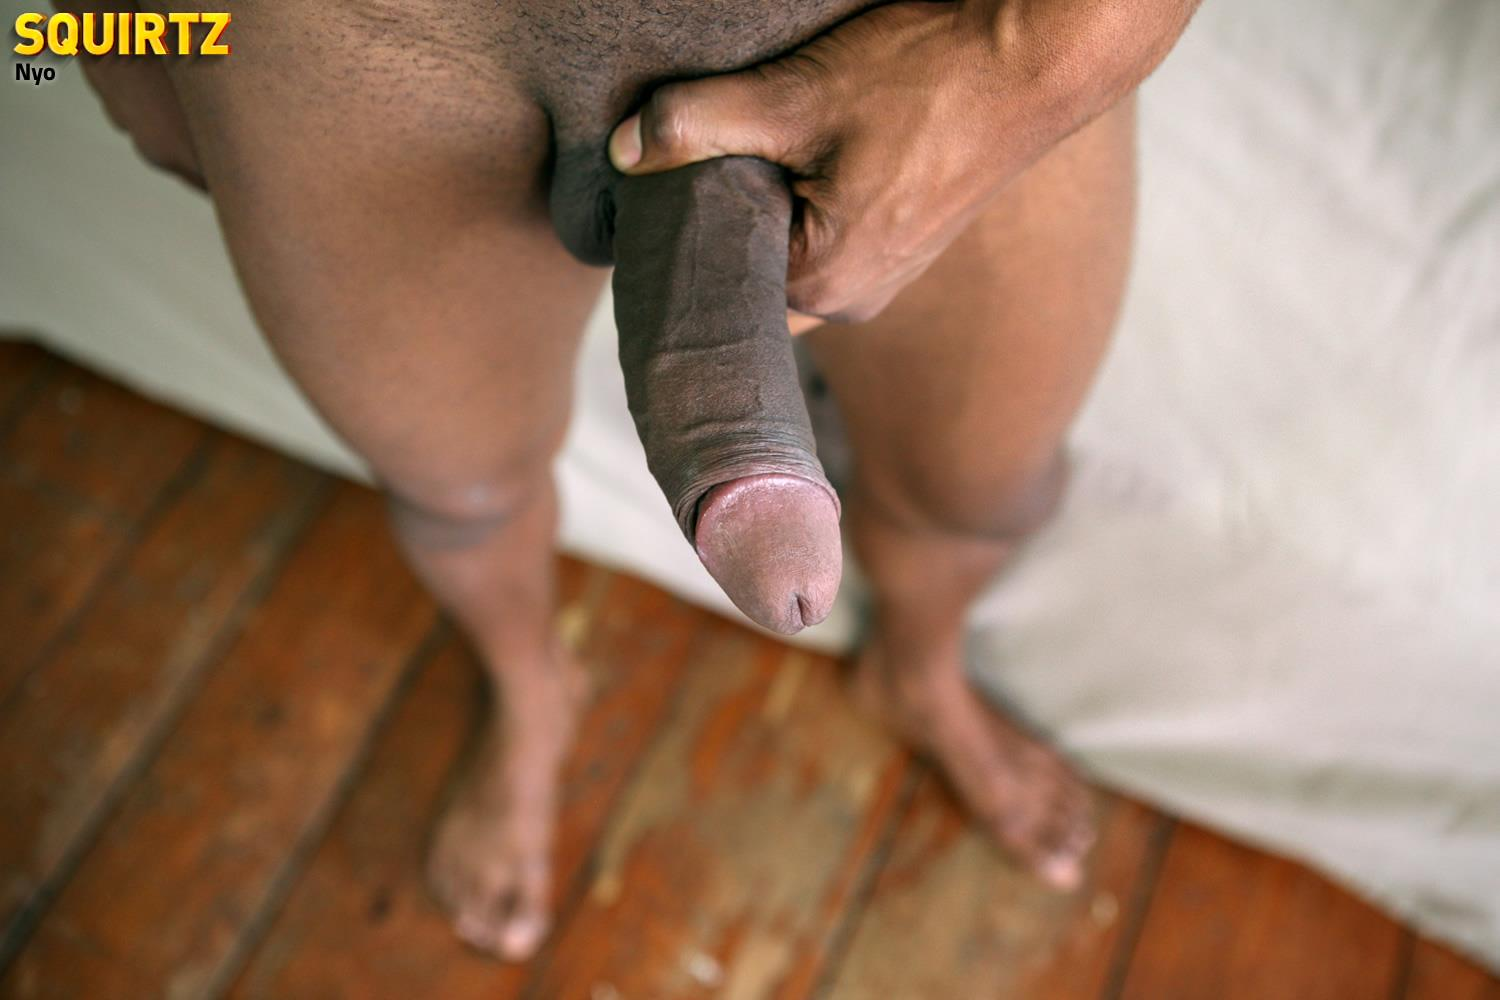 Huge dicks jacking off